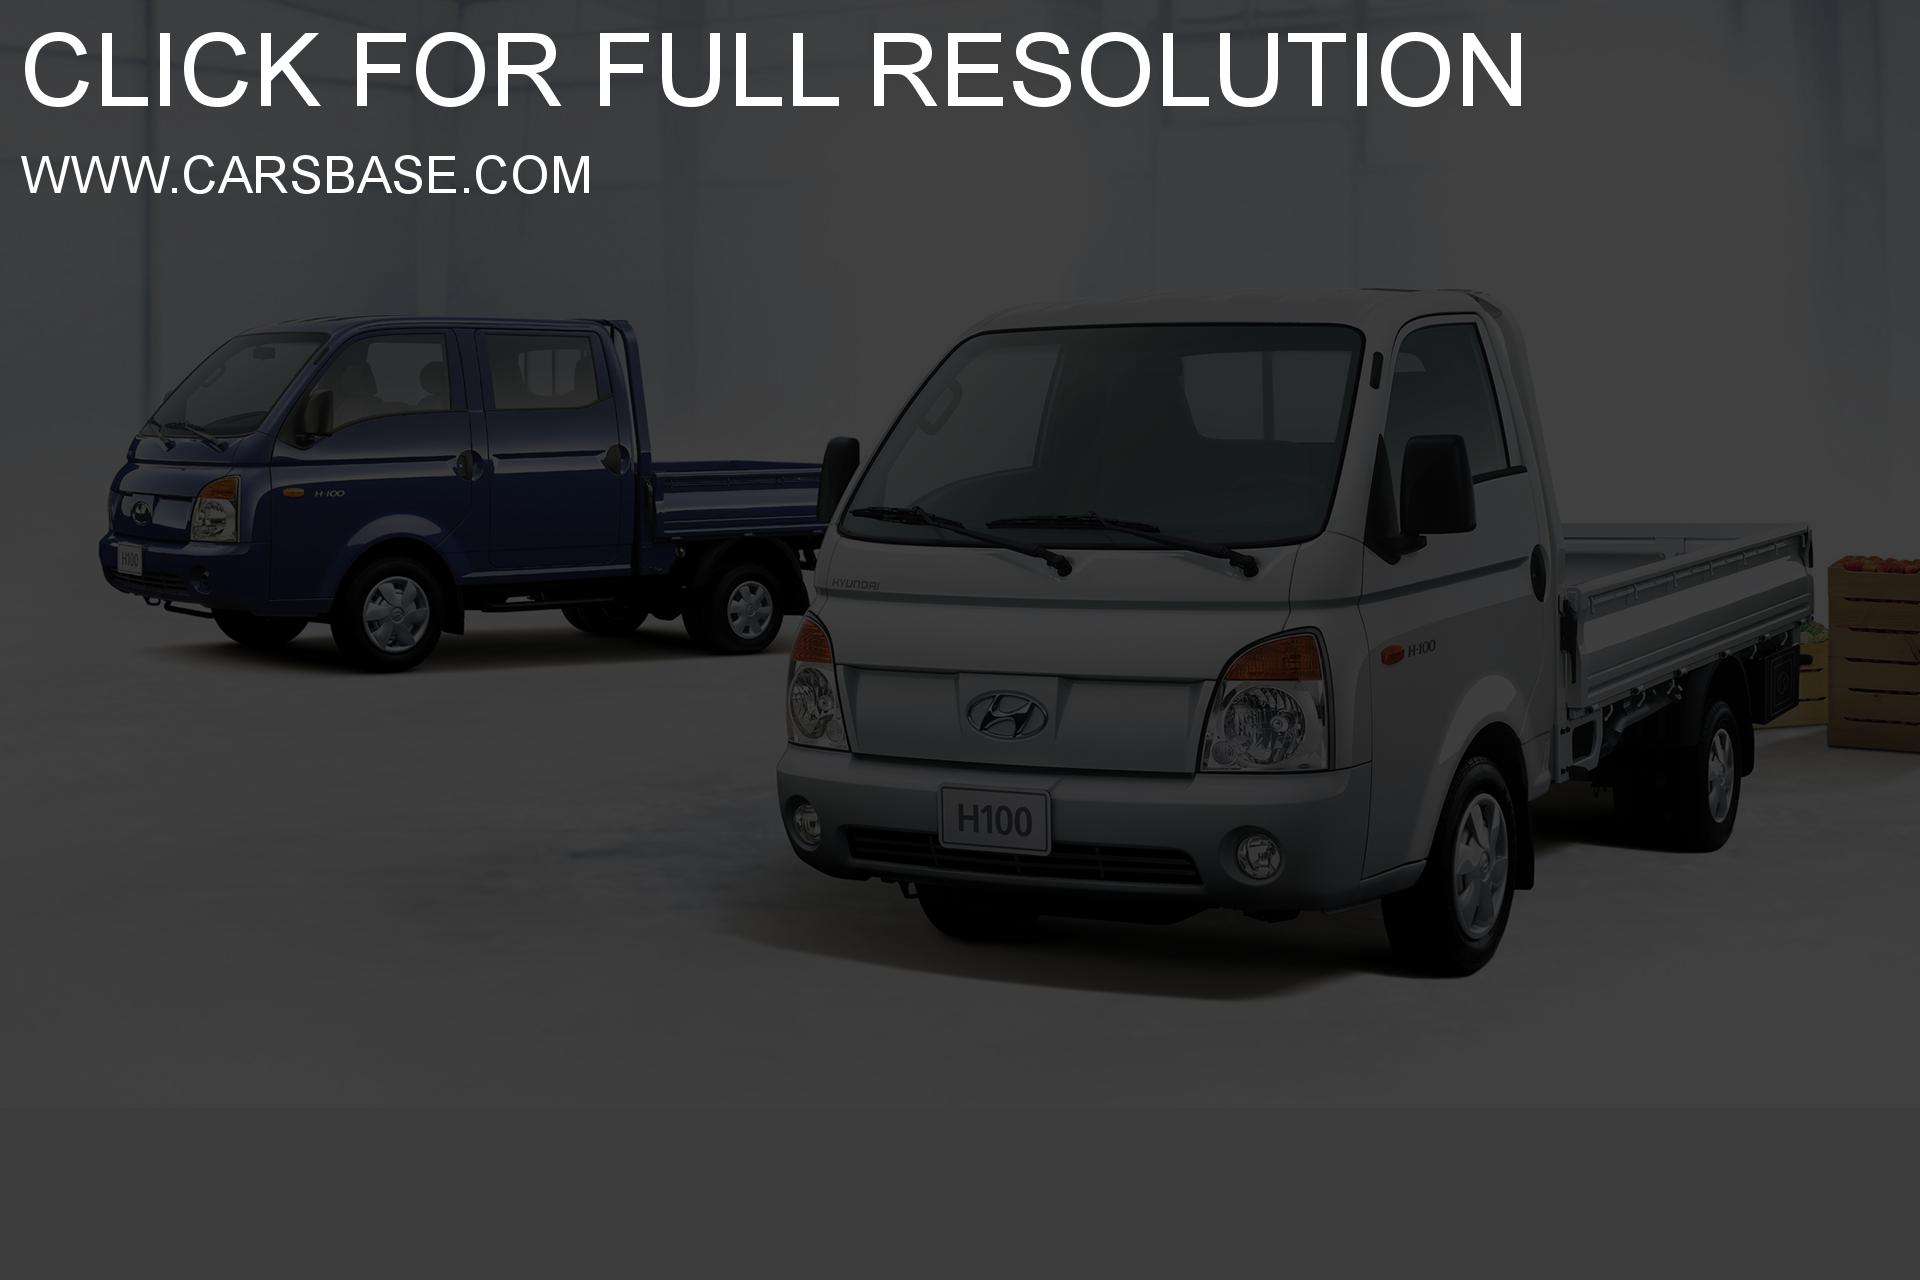 Hyundai h100 photo - 2